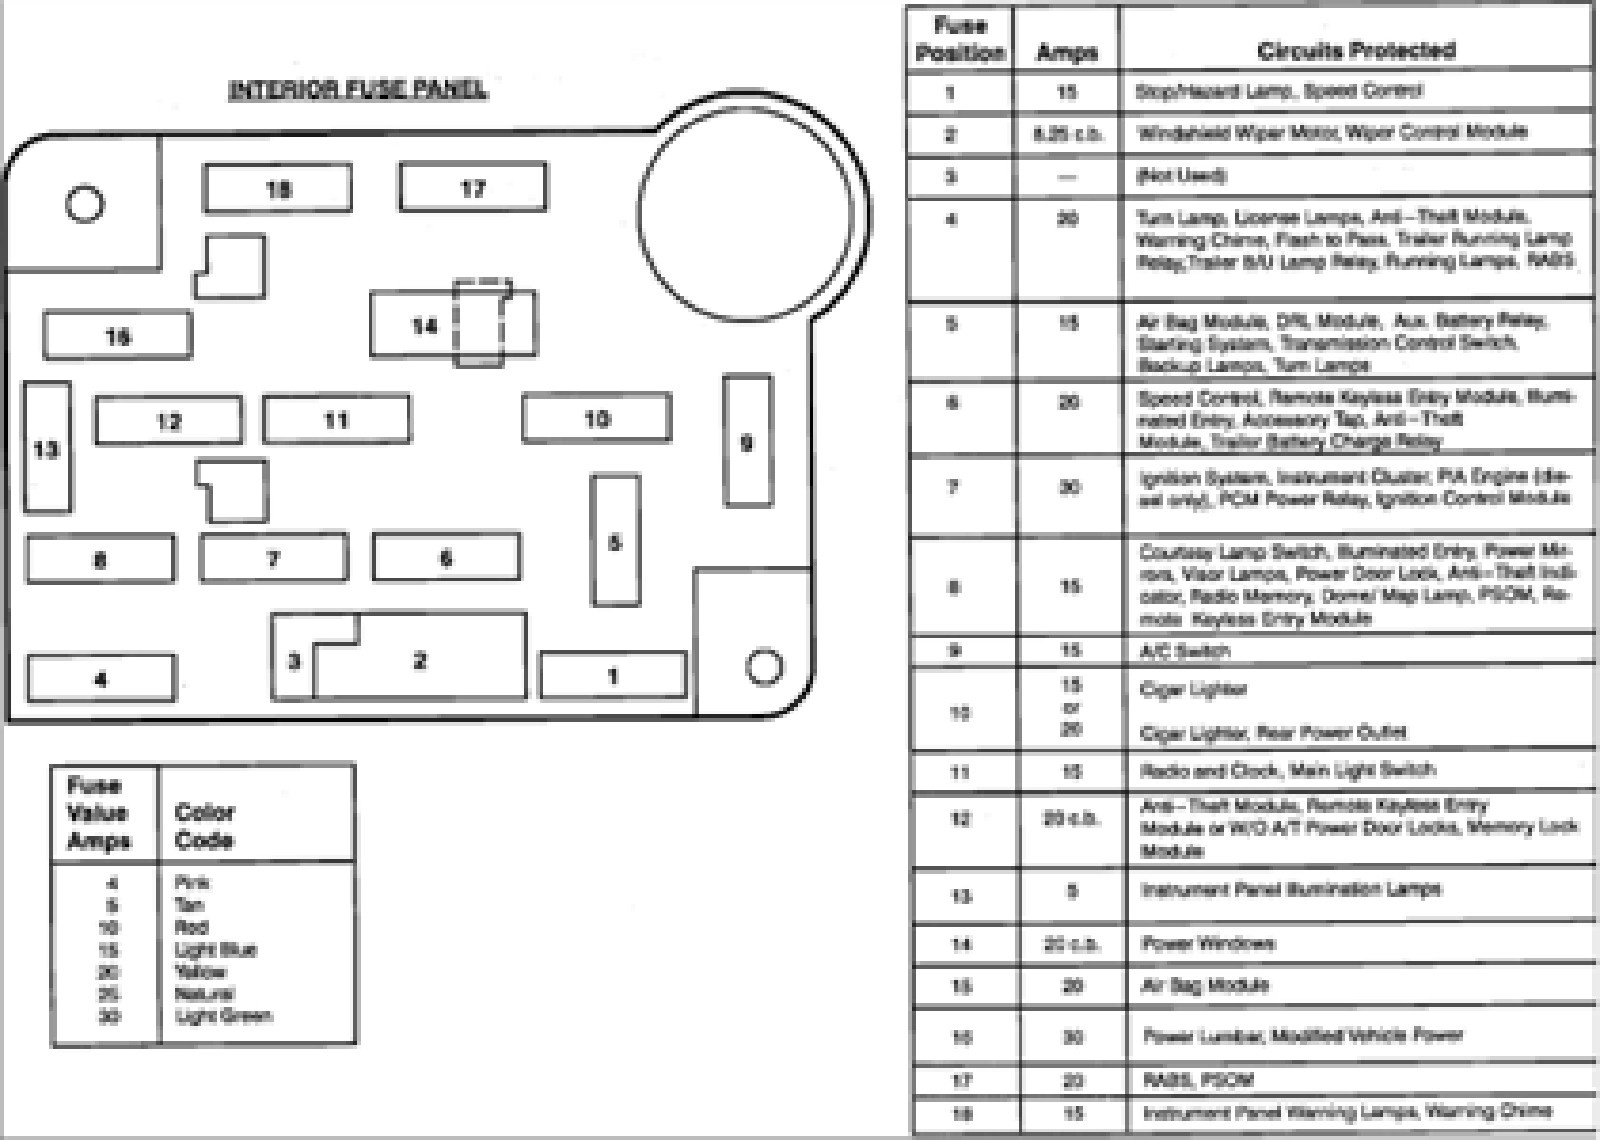 ford e 150 questions fuse diagram for a 1993 ford econoline van 2003 Crown Vic Fuse Diagram